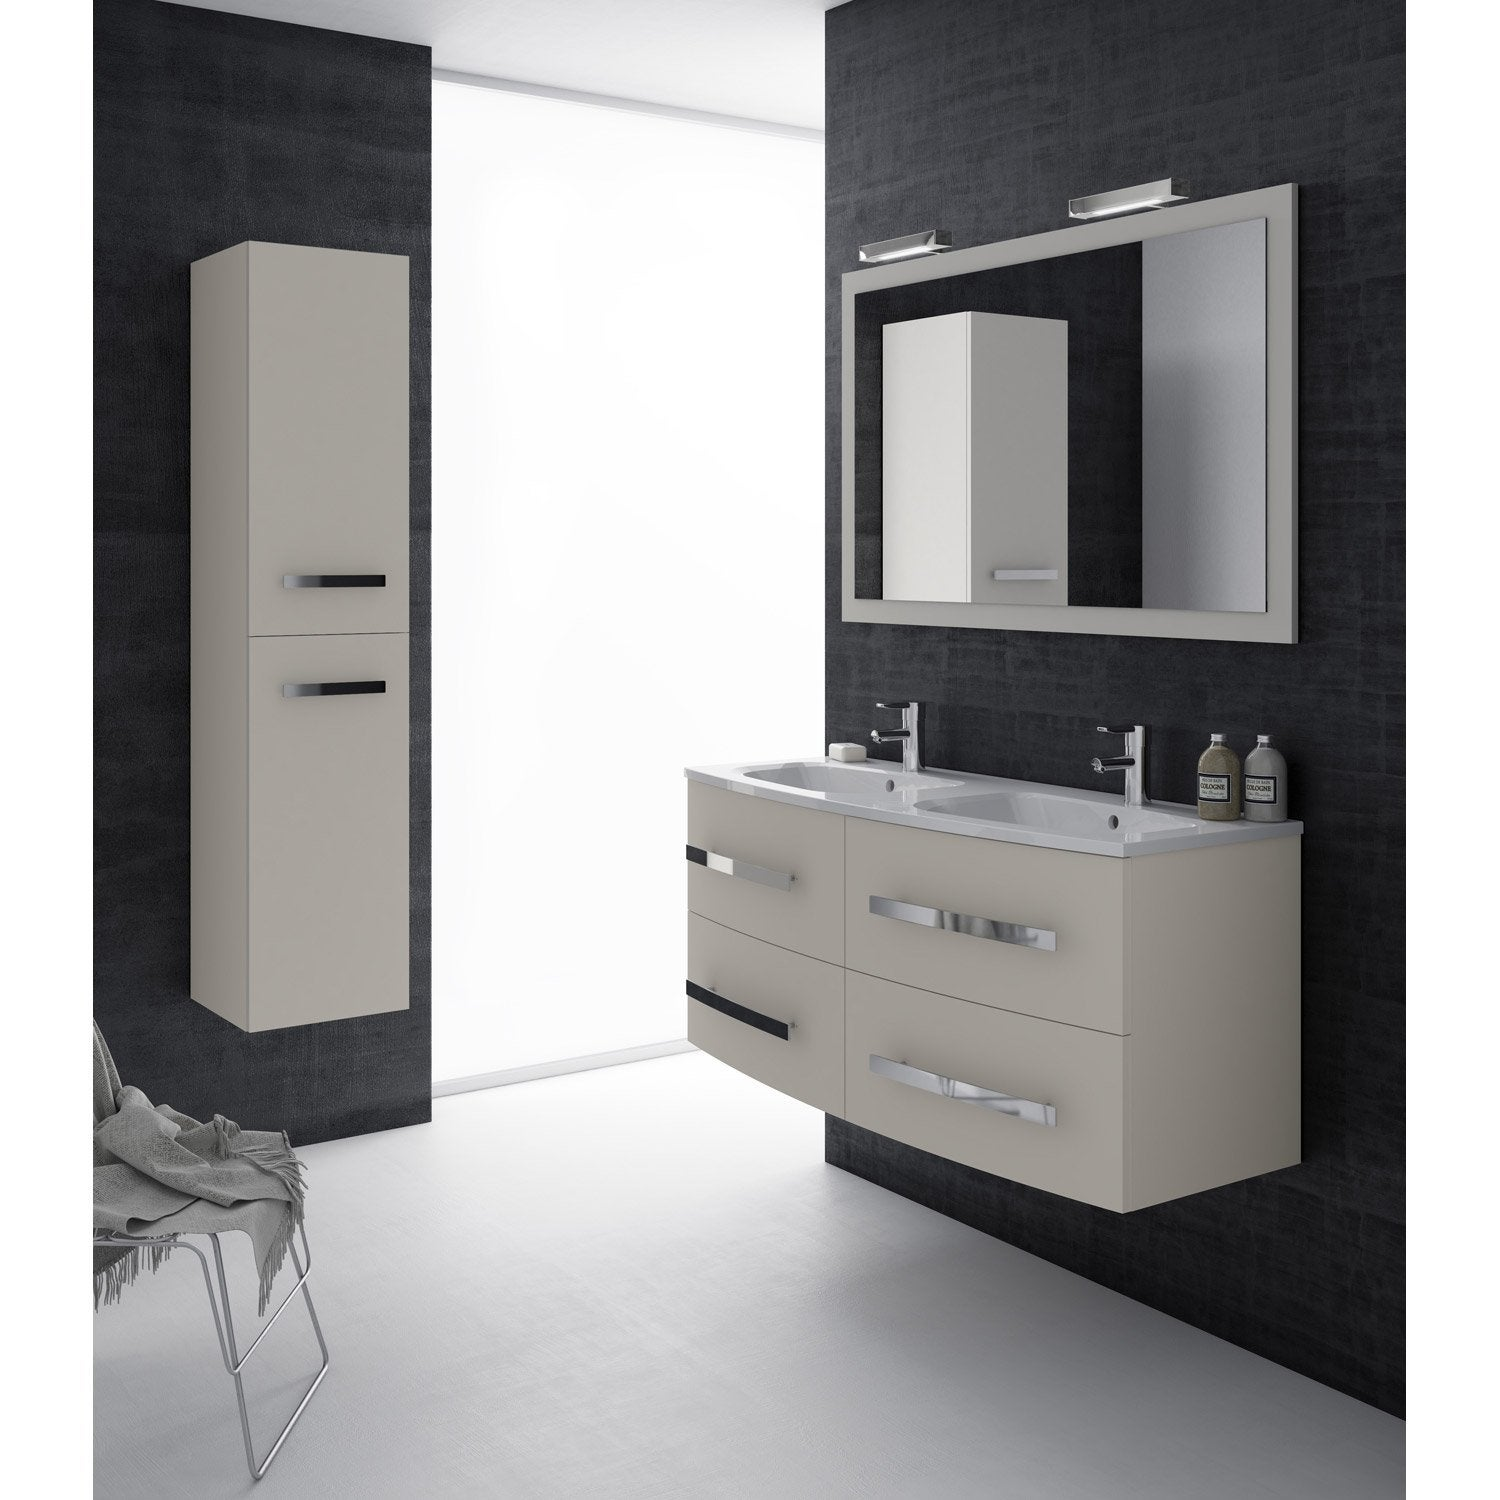 meuble de salle de bains plus de 120 beige perla leroy merlin. Black Bedroom Furniture Sets. Home Design Ideas